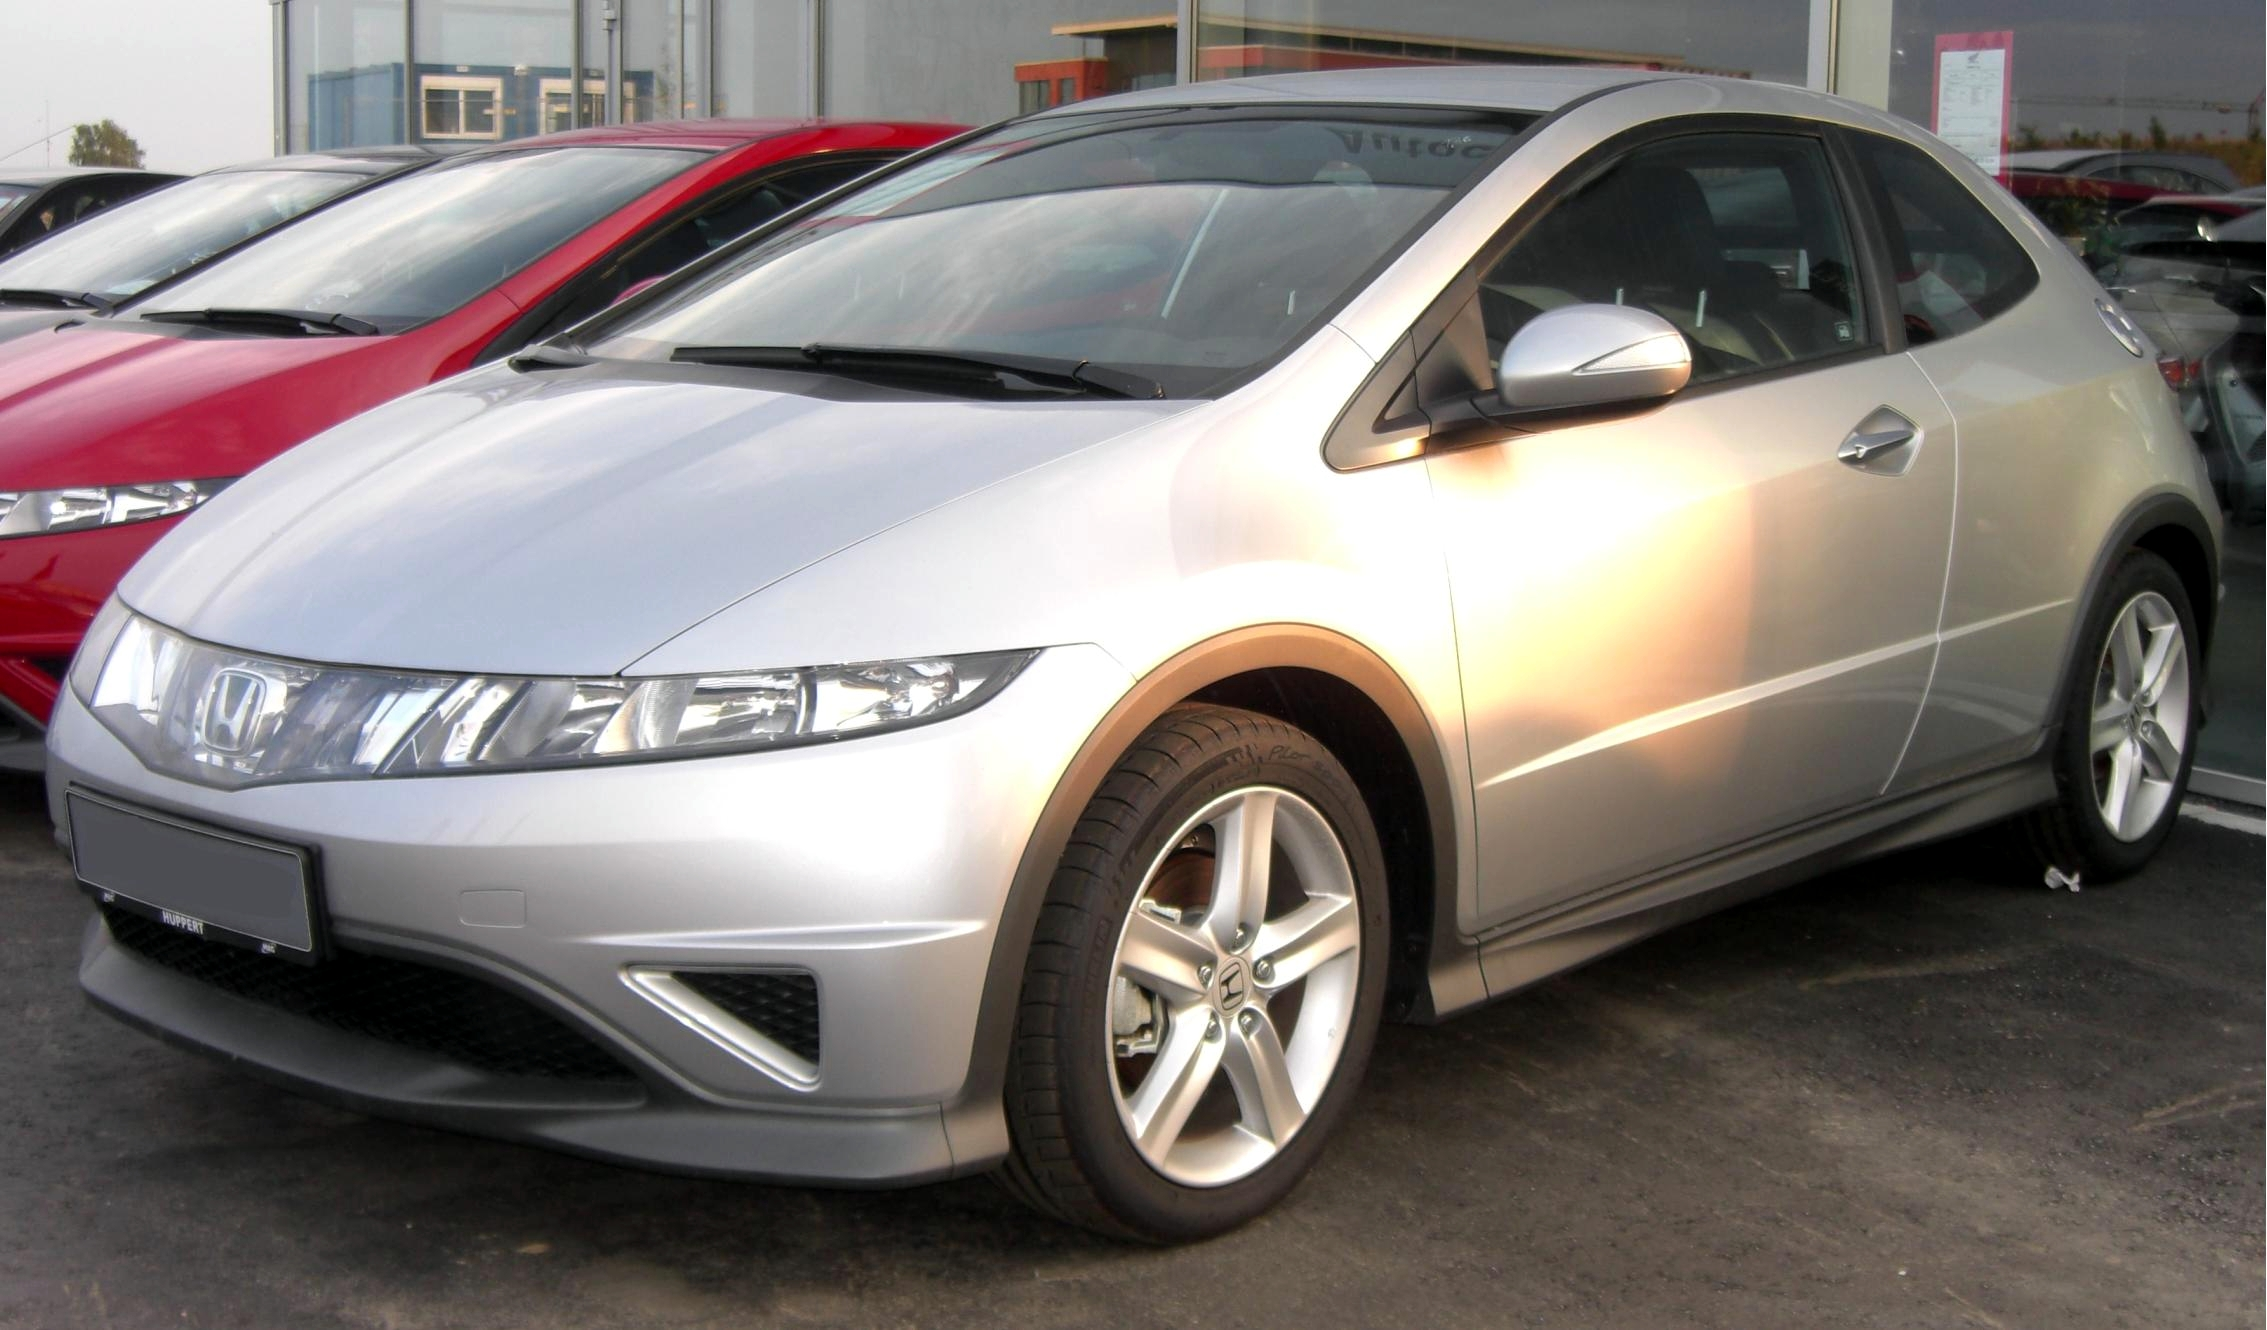 honda civic type s - photo #47